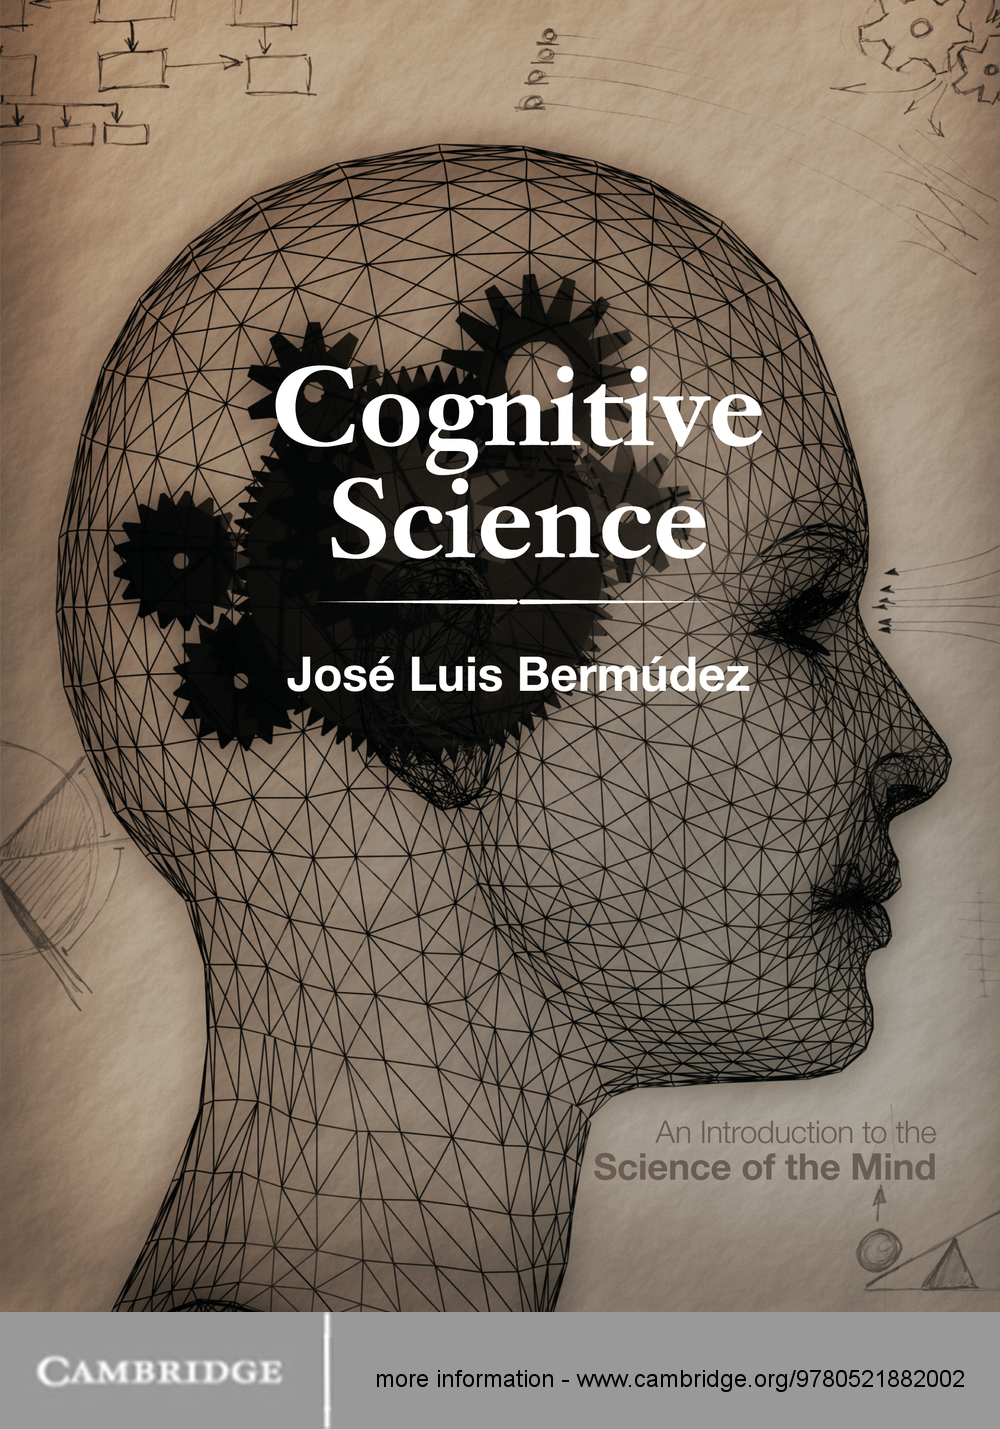 Cognitive Science An Introduction to the Science of the Mind